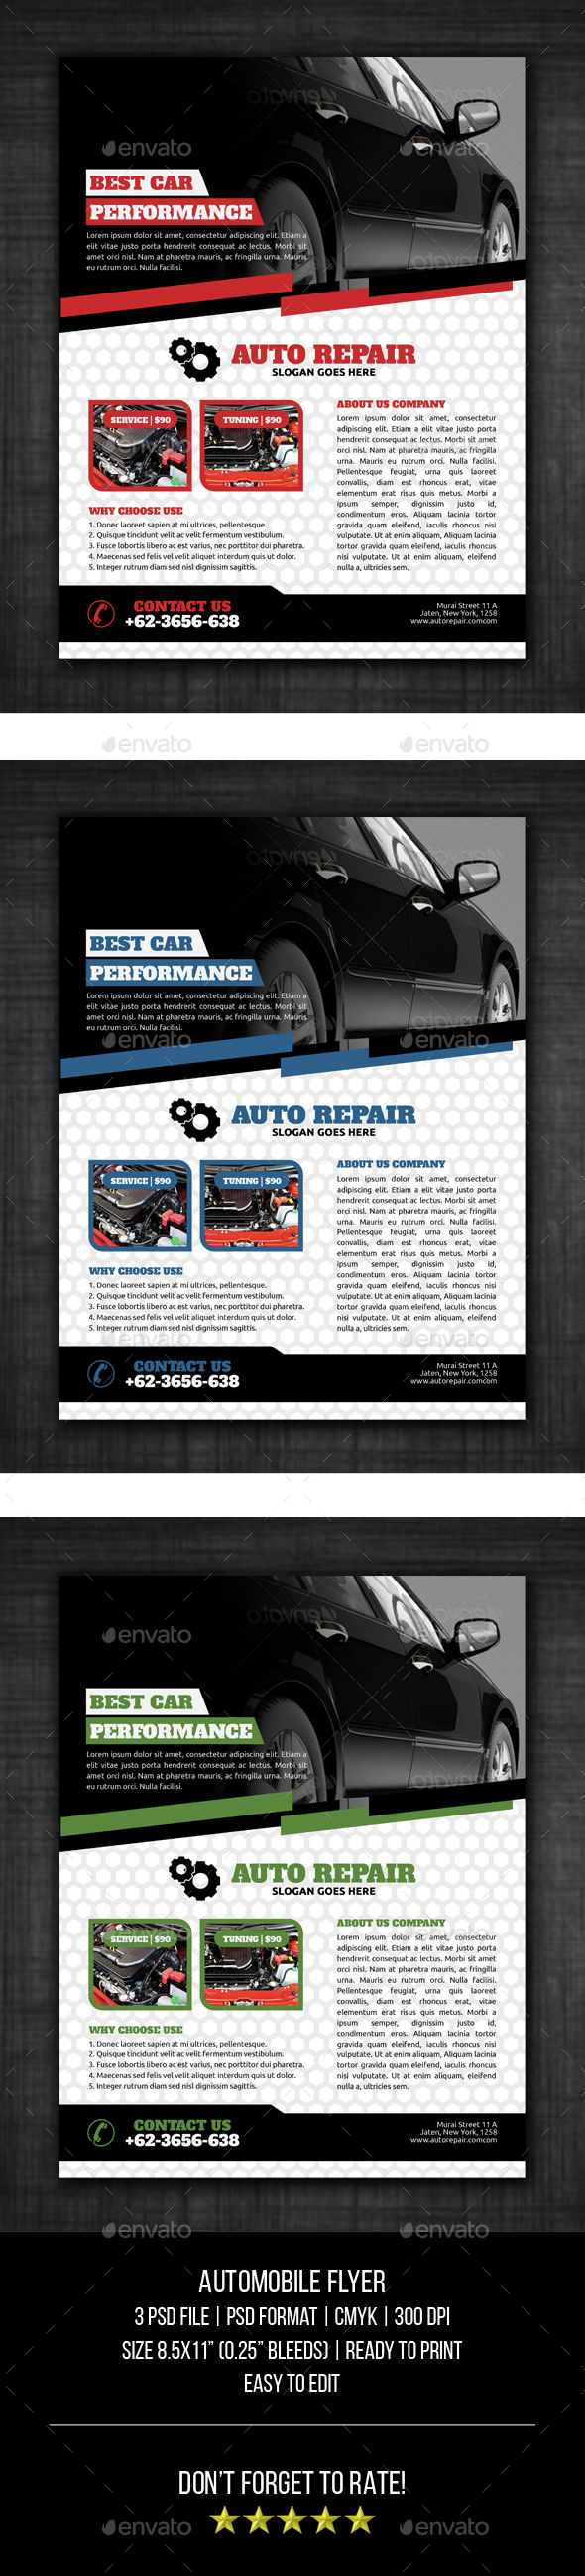 Automobile Flyer Template - Corporate Flyers